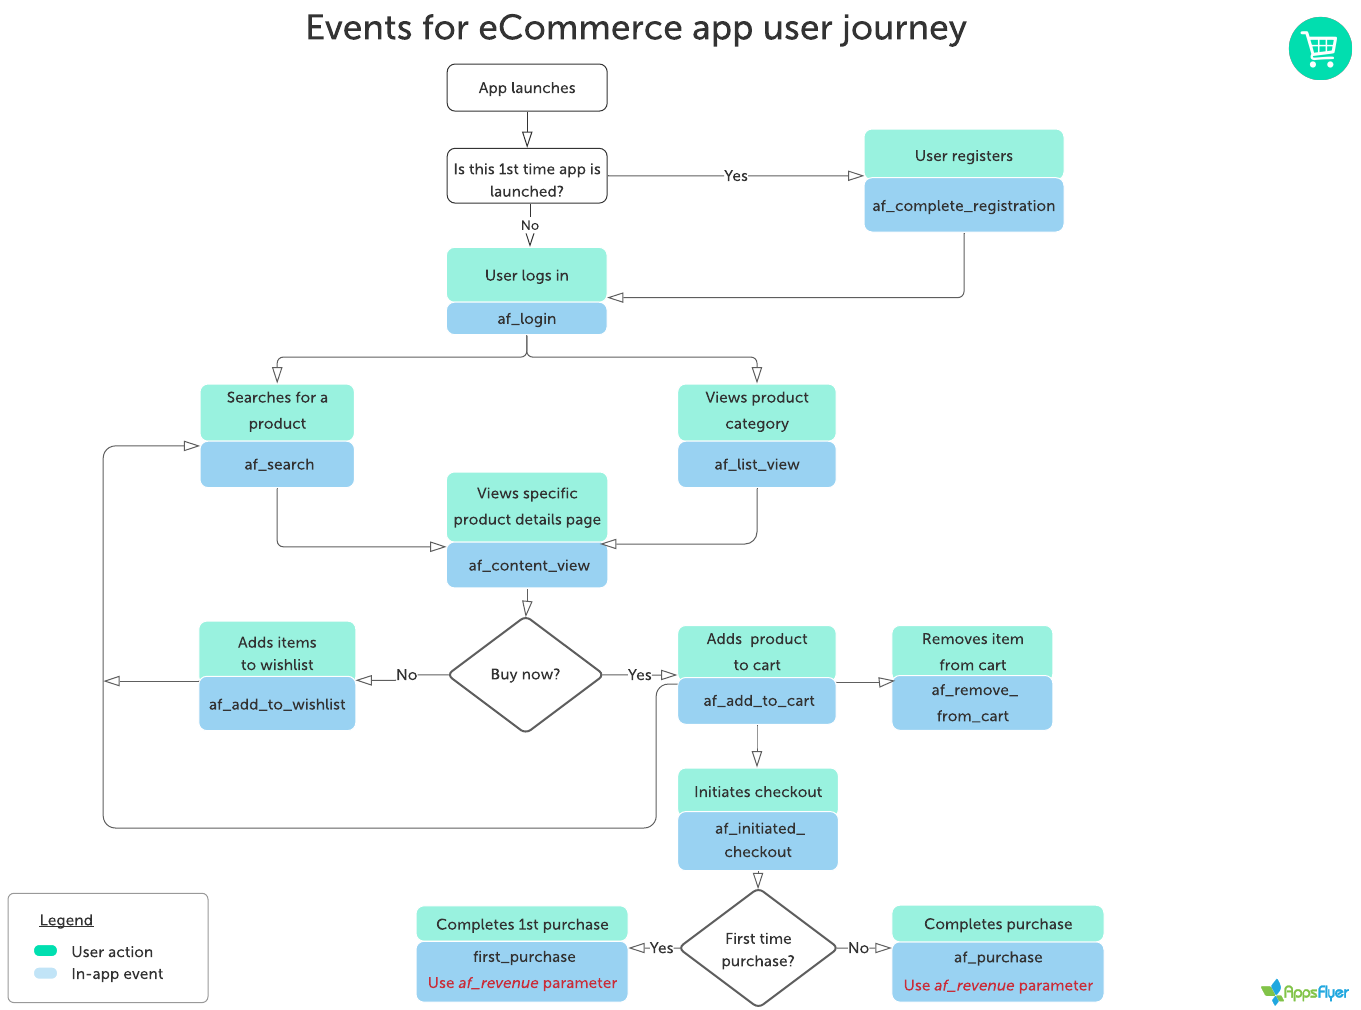 Flowchart_for_recommended_events e-Commerce_app_user_journey